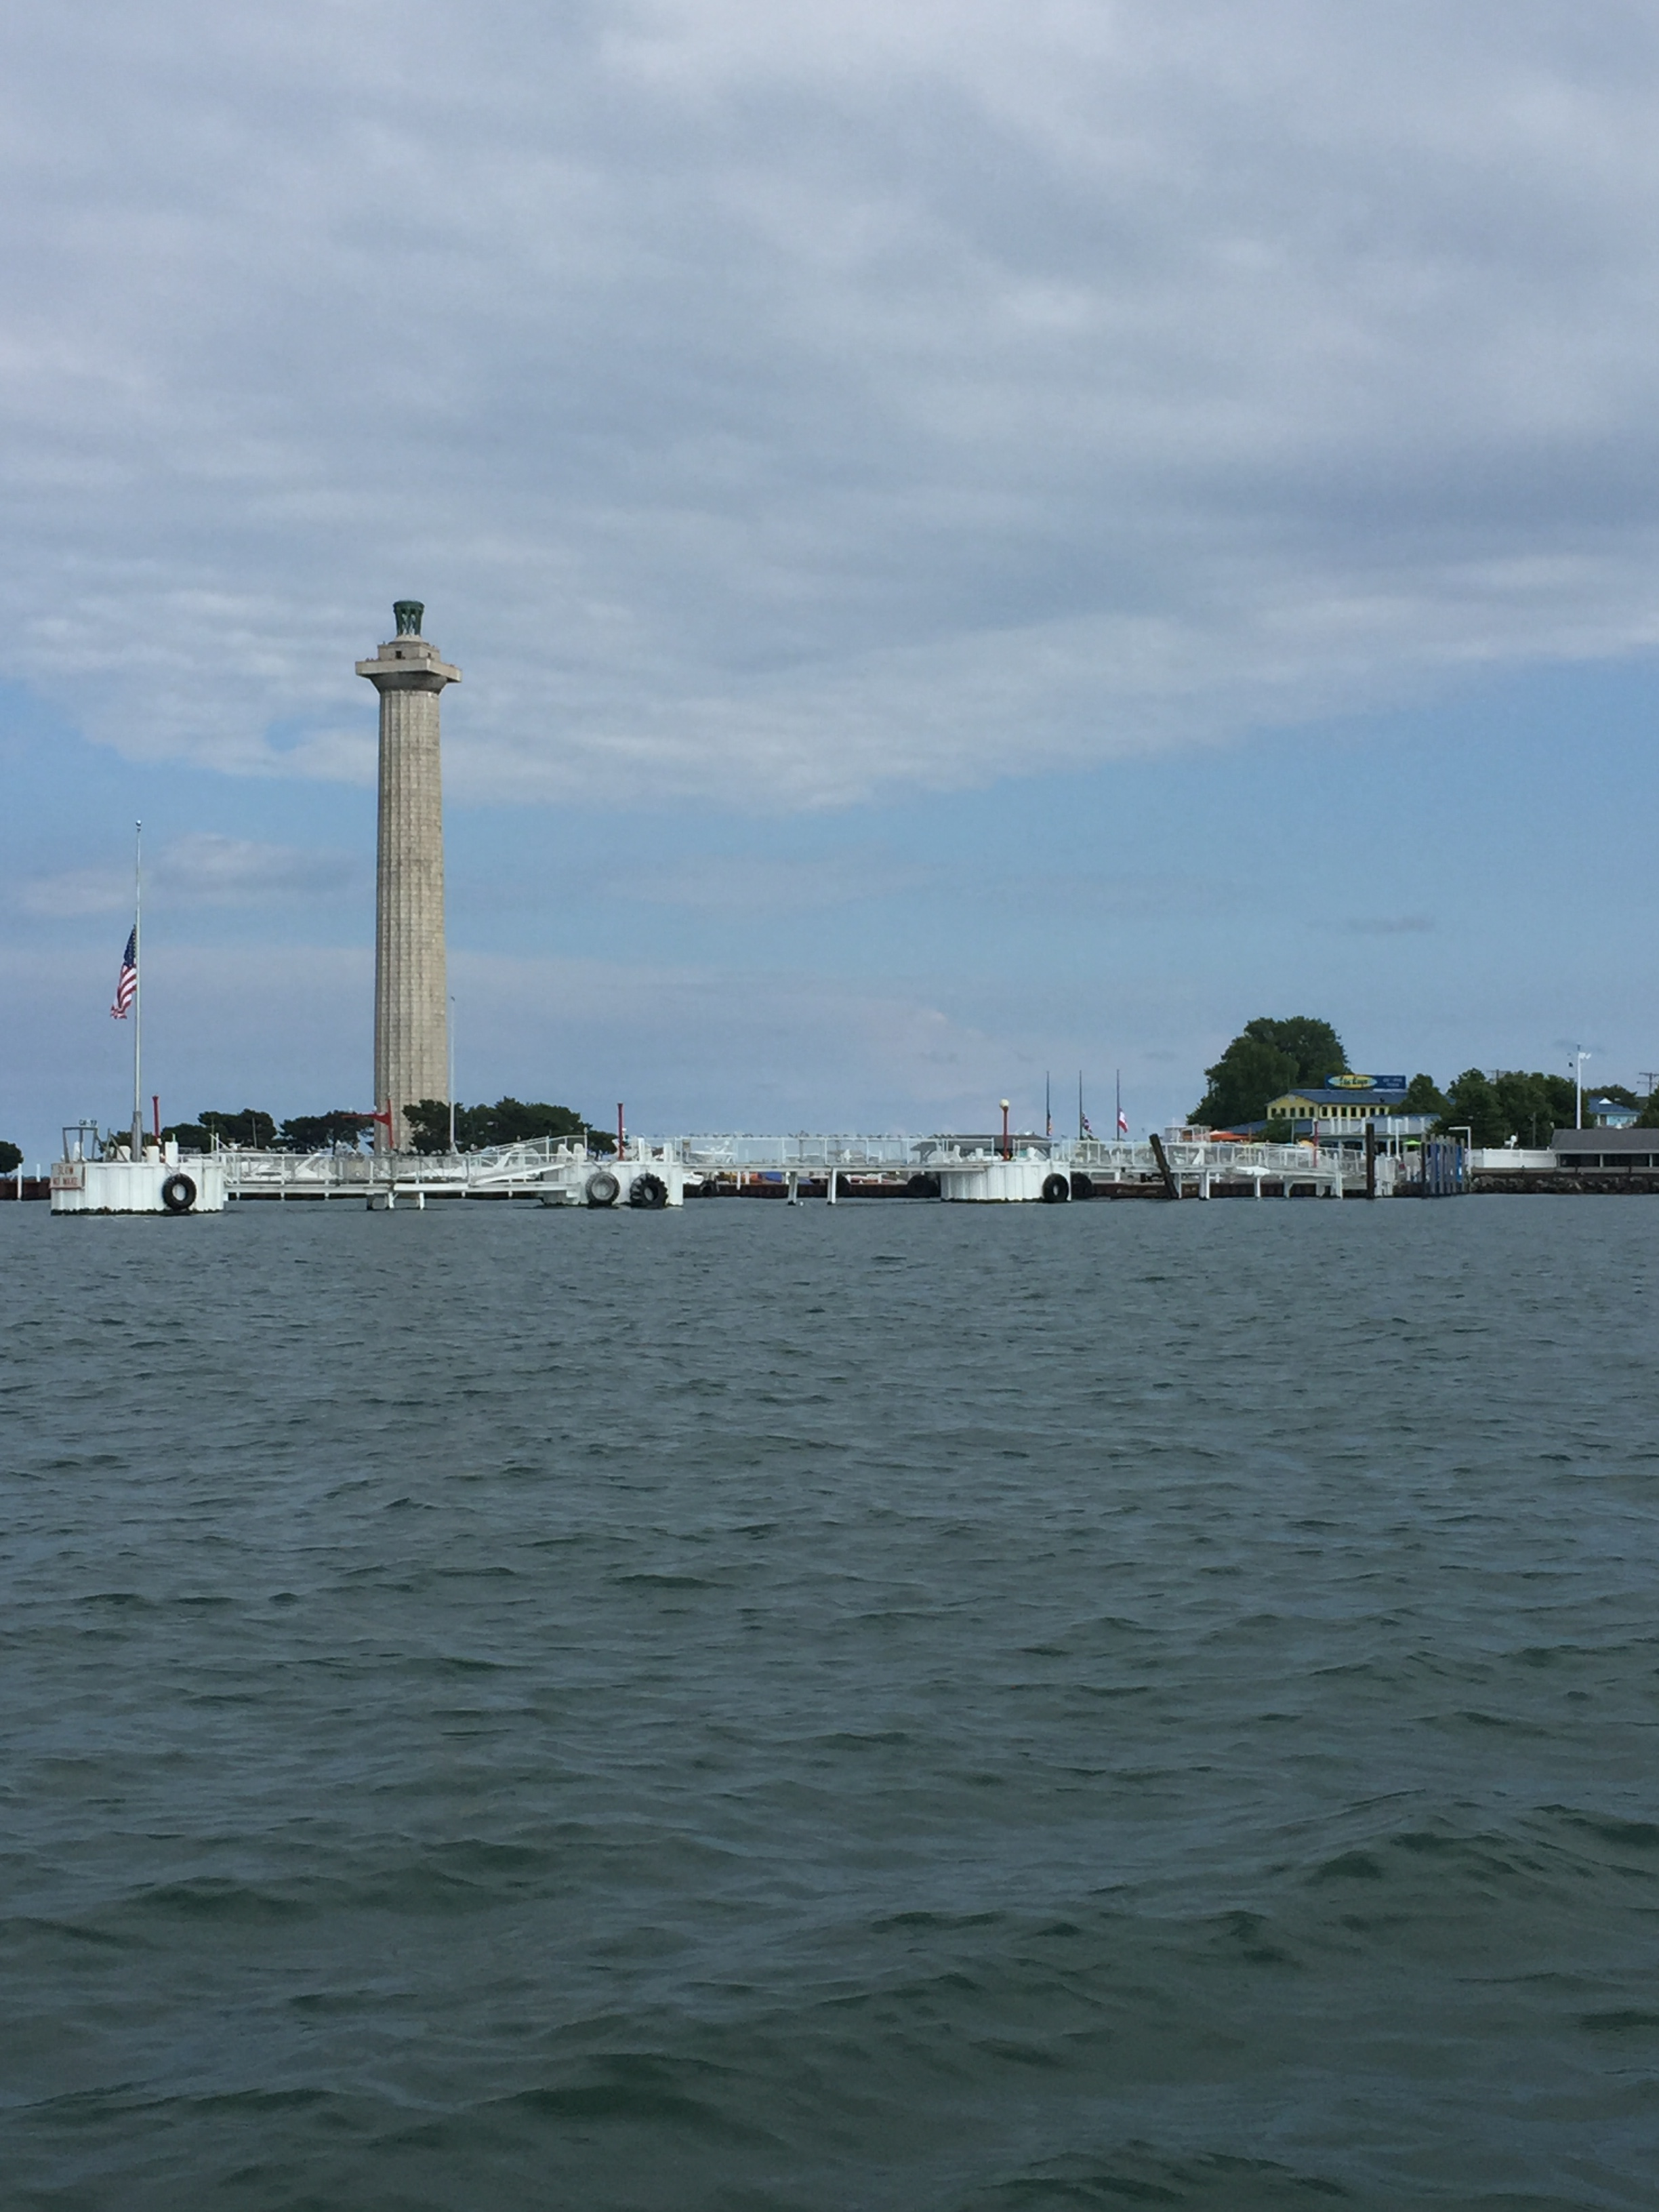 Perry's Monument at Put-in-Bay